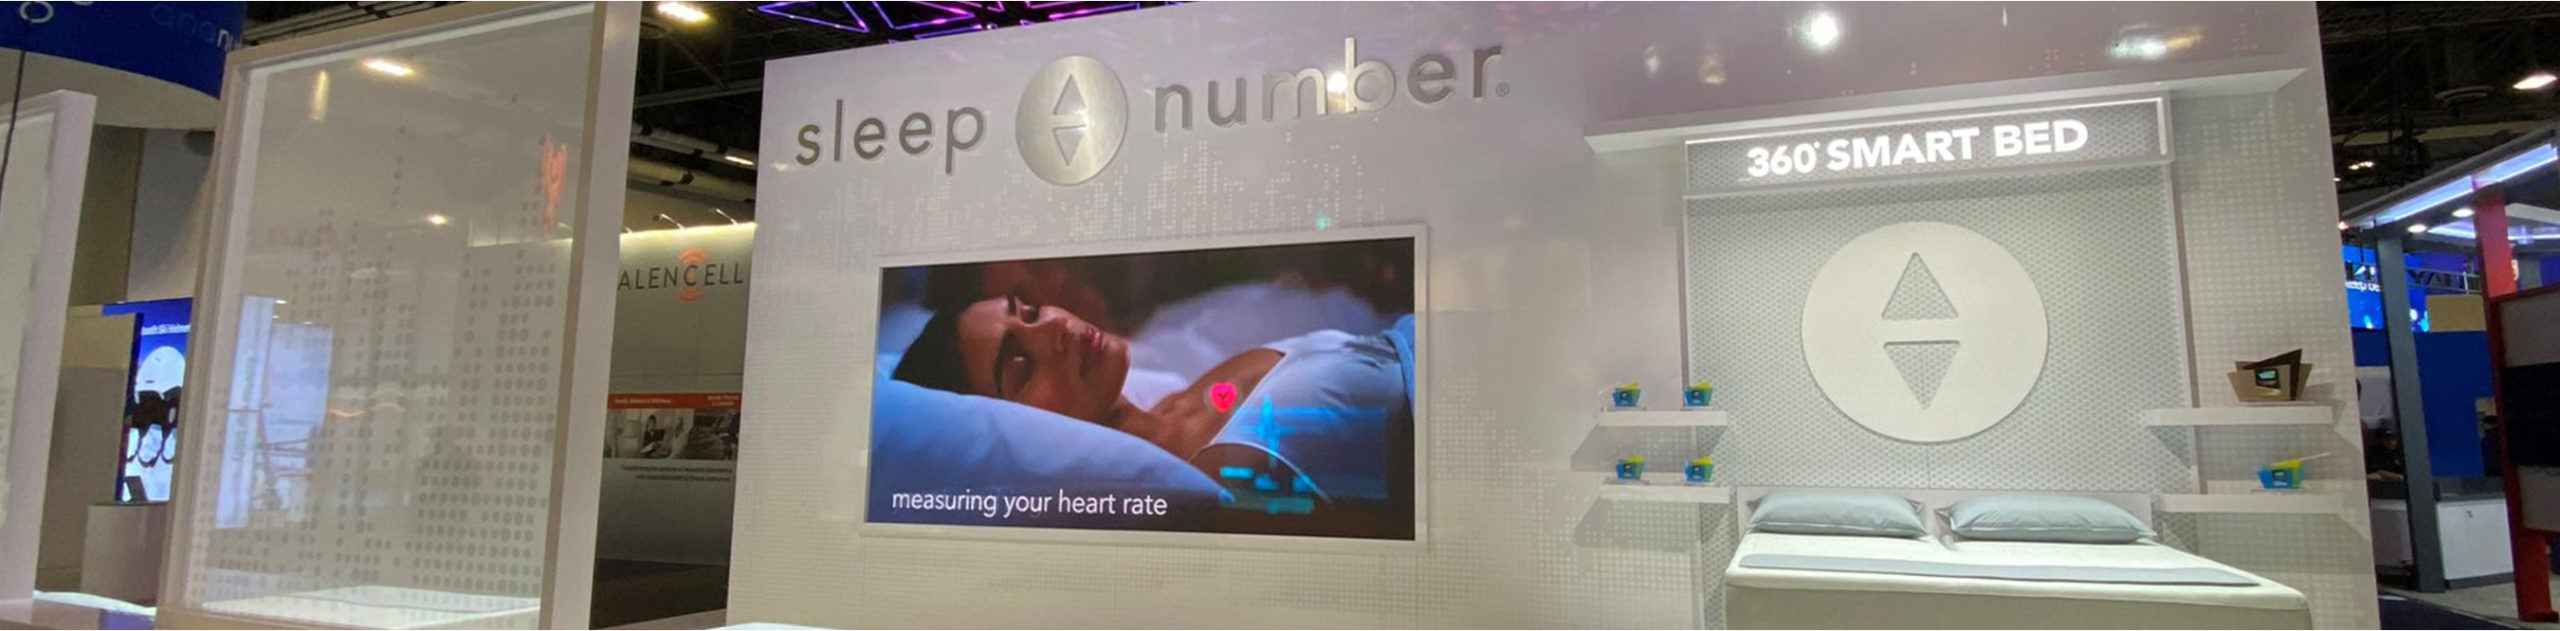 sleep number bed at CES booth 2020